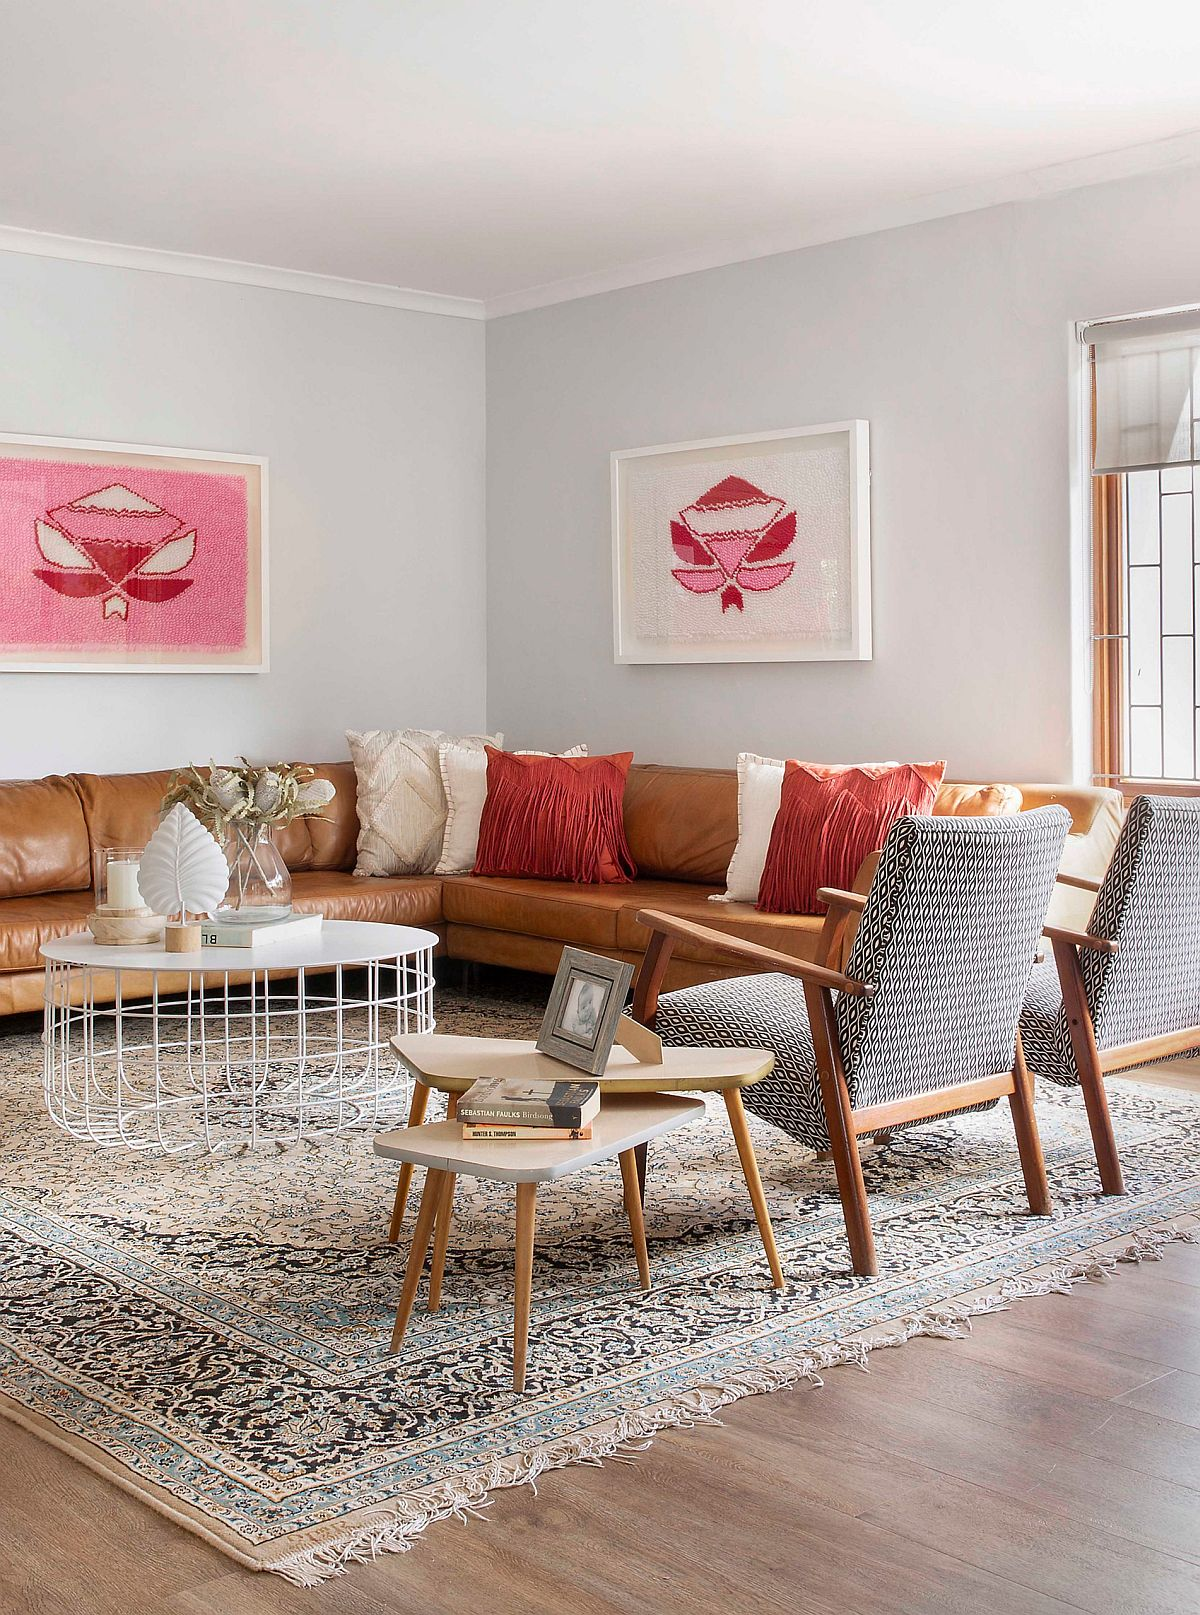 Accent pillows in orange and cream give the room a balanced look